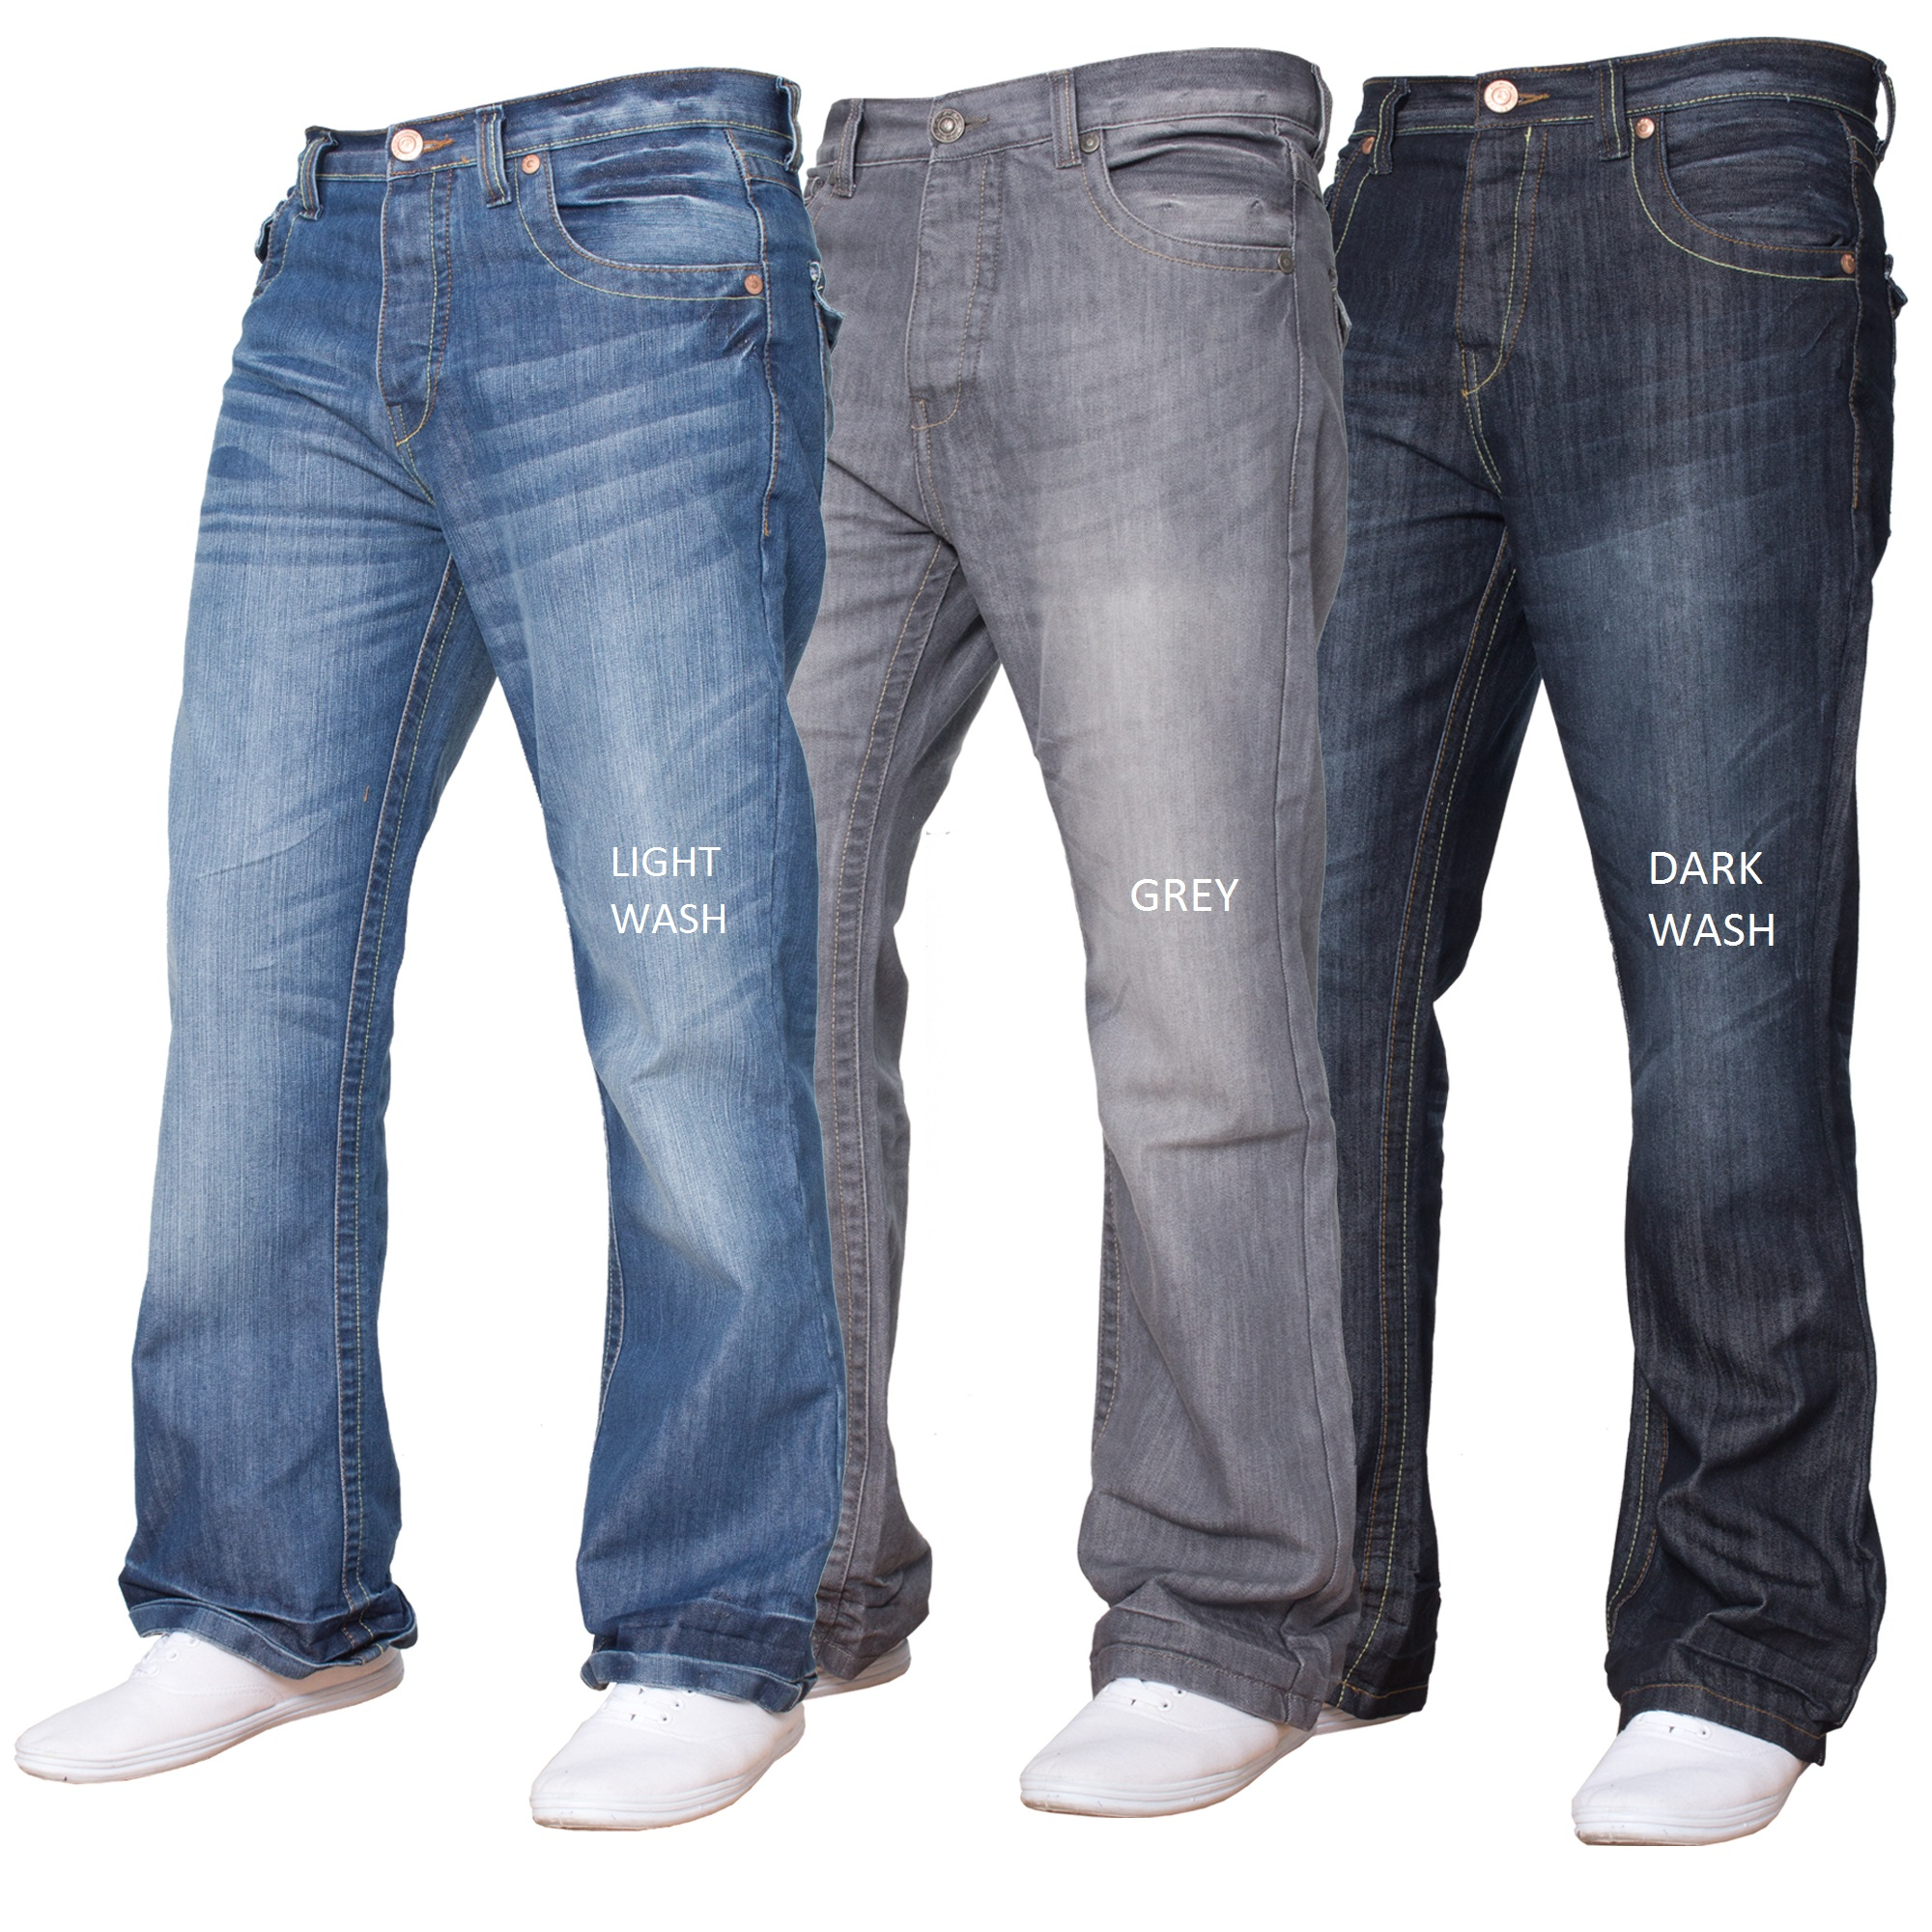 Shop for mens flare jeans online at Target. Free shipping on purchases over $35 and save 5% every day with your Target REDcard.